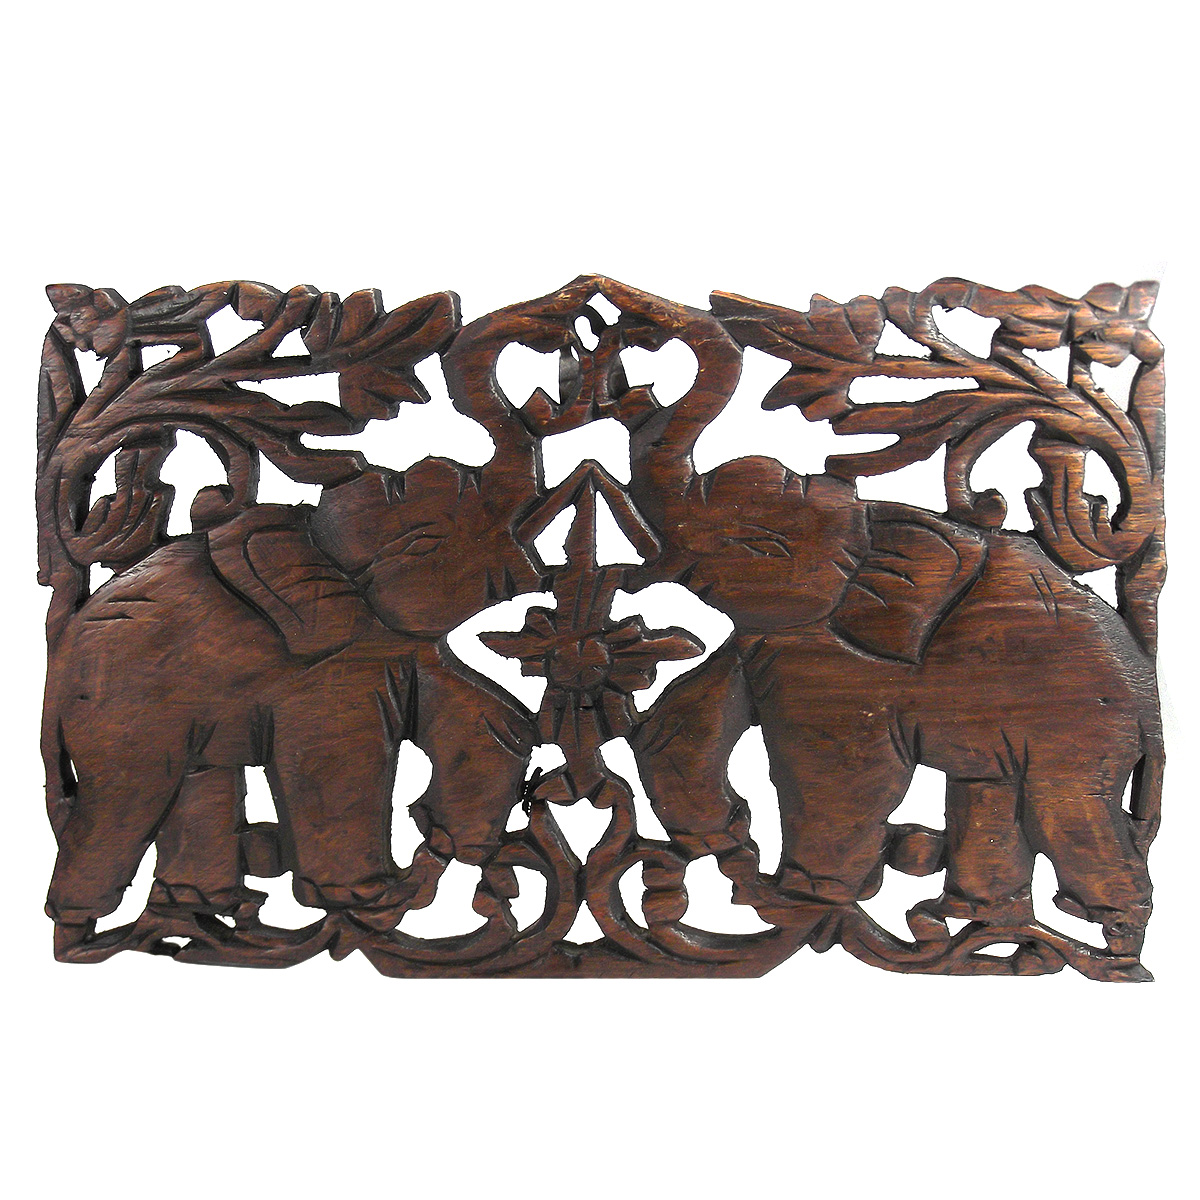 African Wooden Wall Art Jubilant Double Thai Elephant Calves Hand Carved Teak Wood